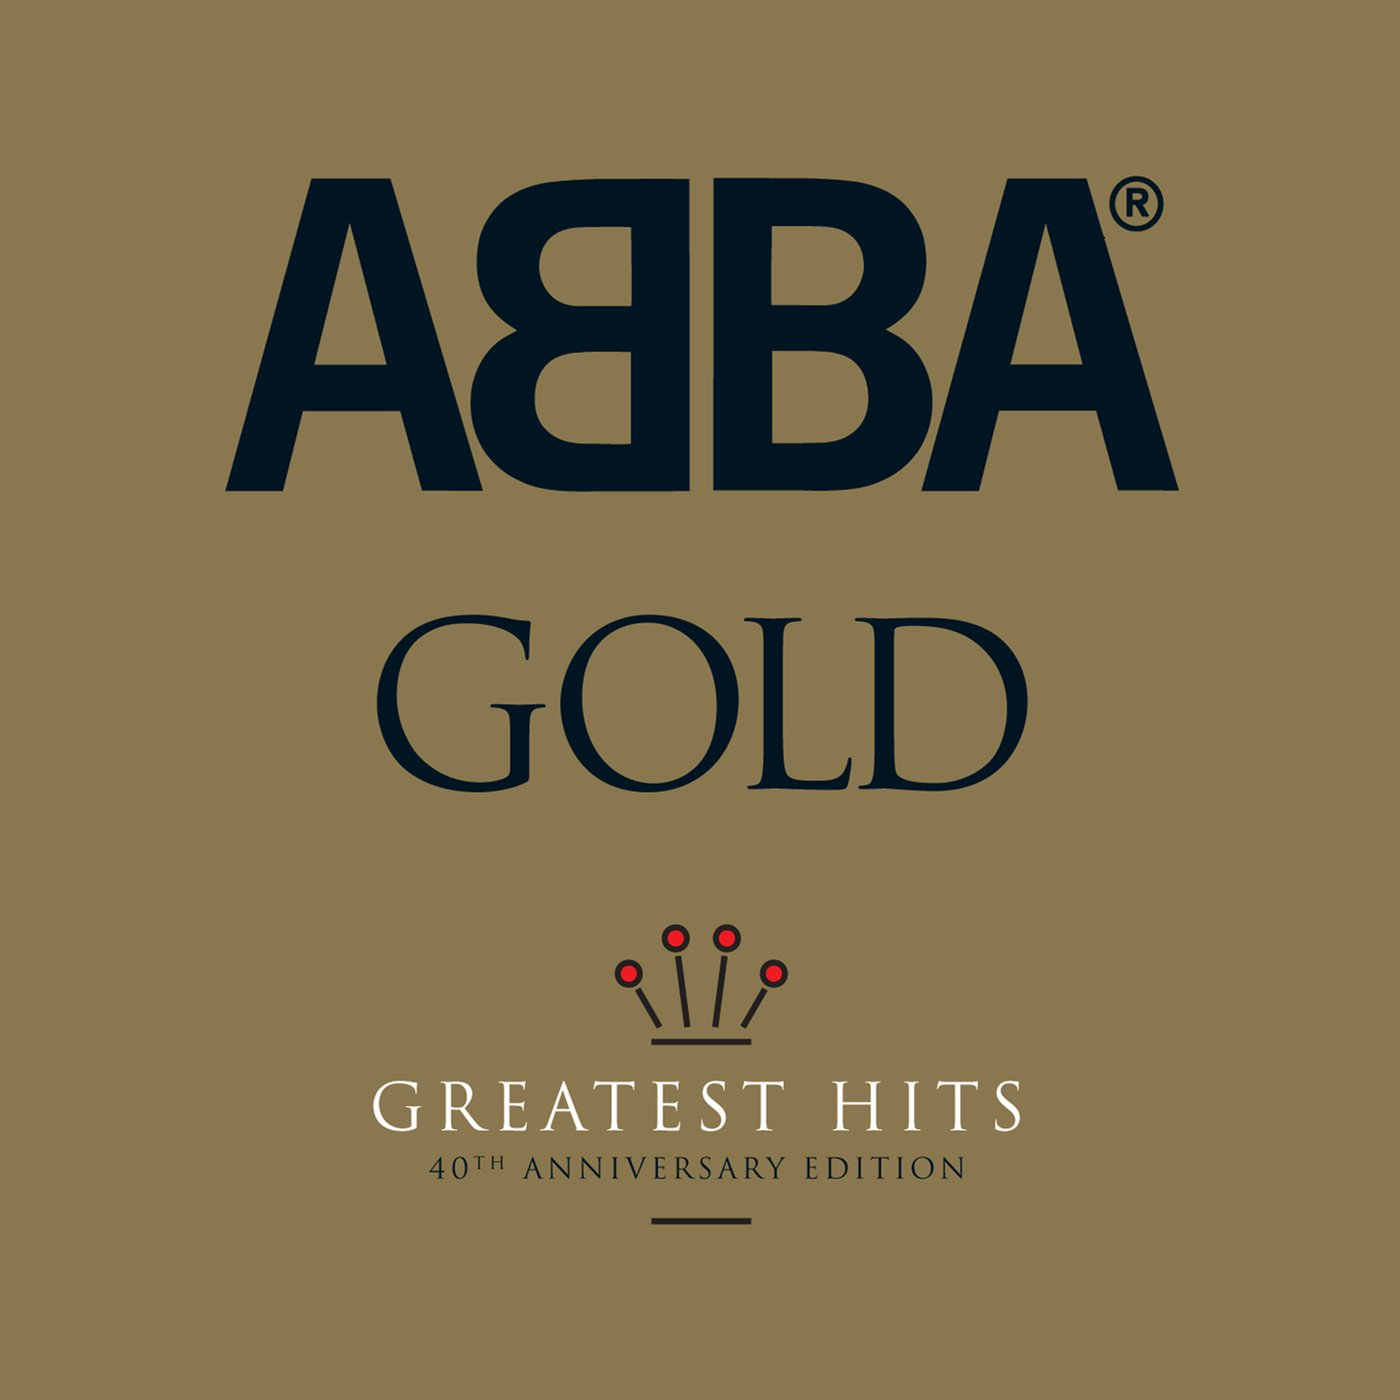 Gold - Greatest Hits [3 CD][Deluxe Edition] by ABBA